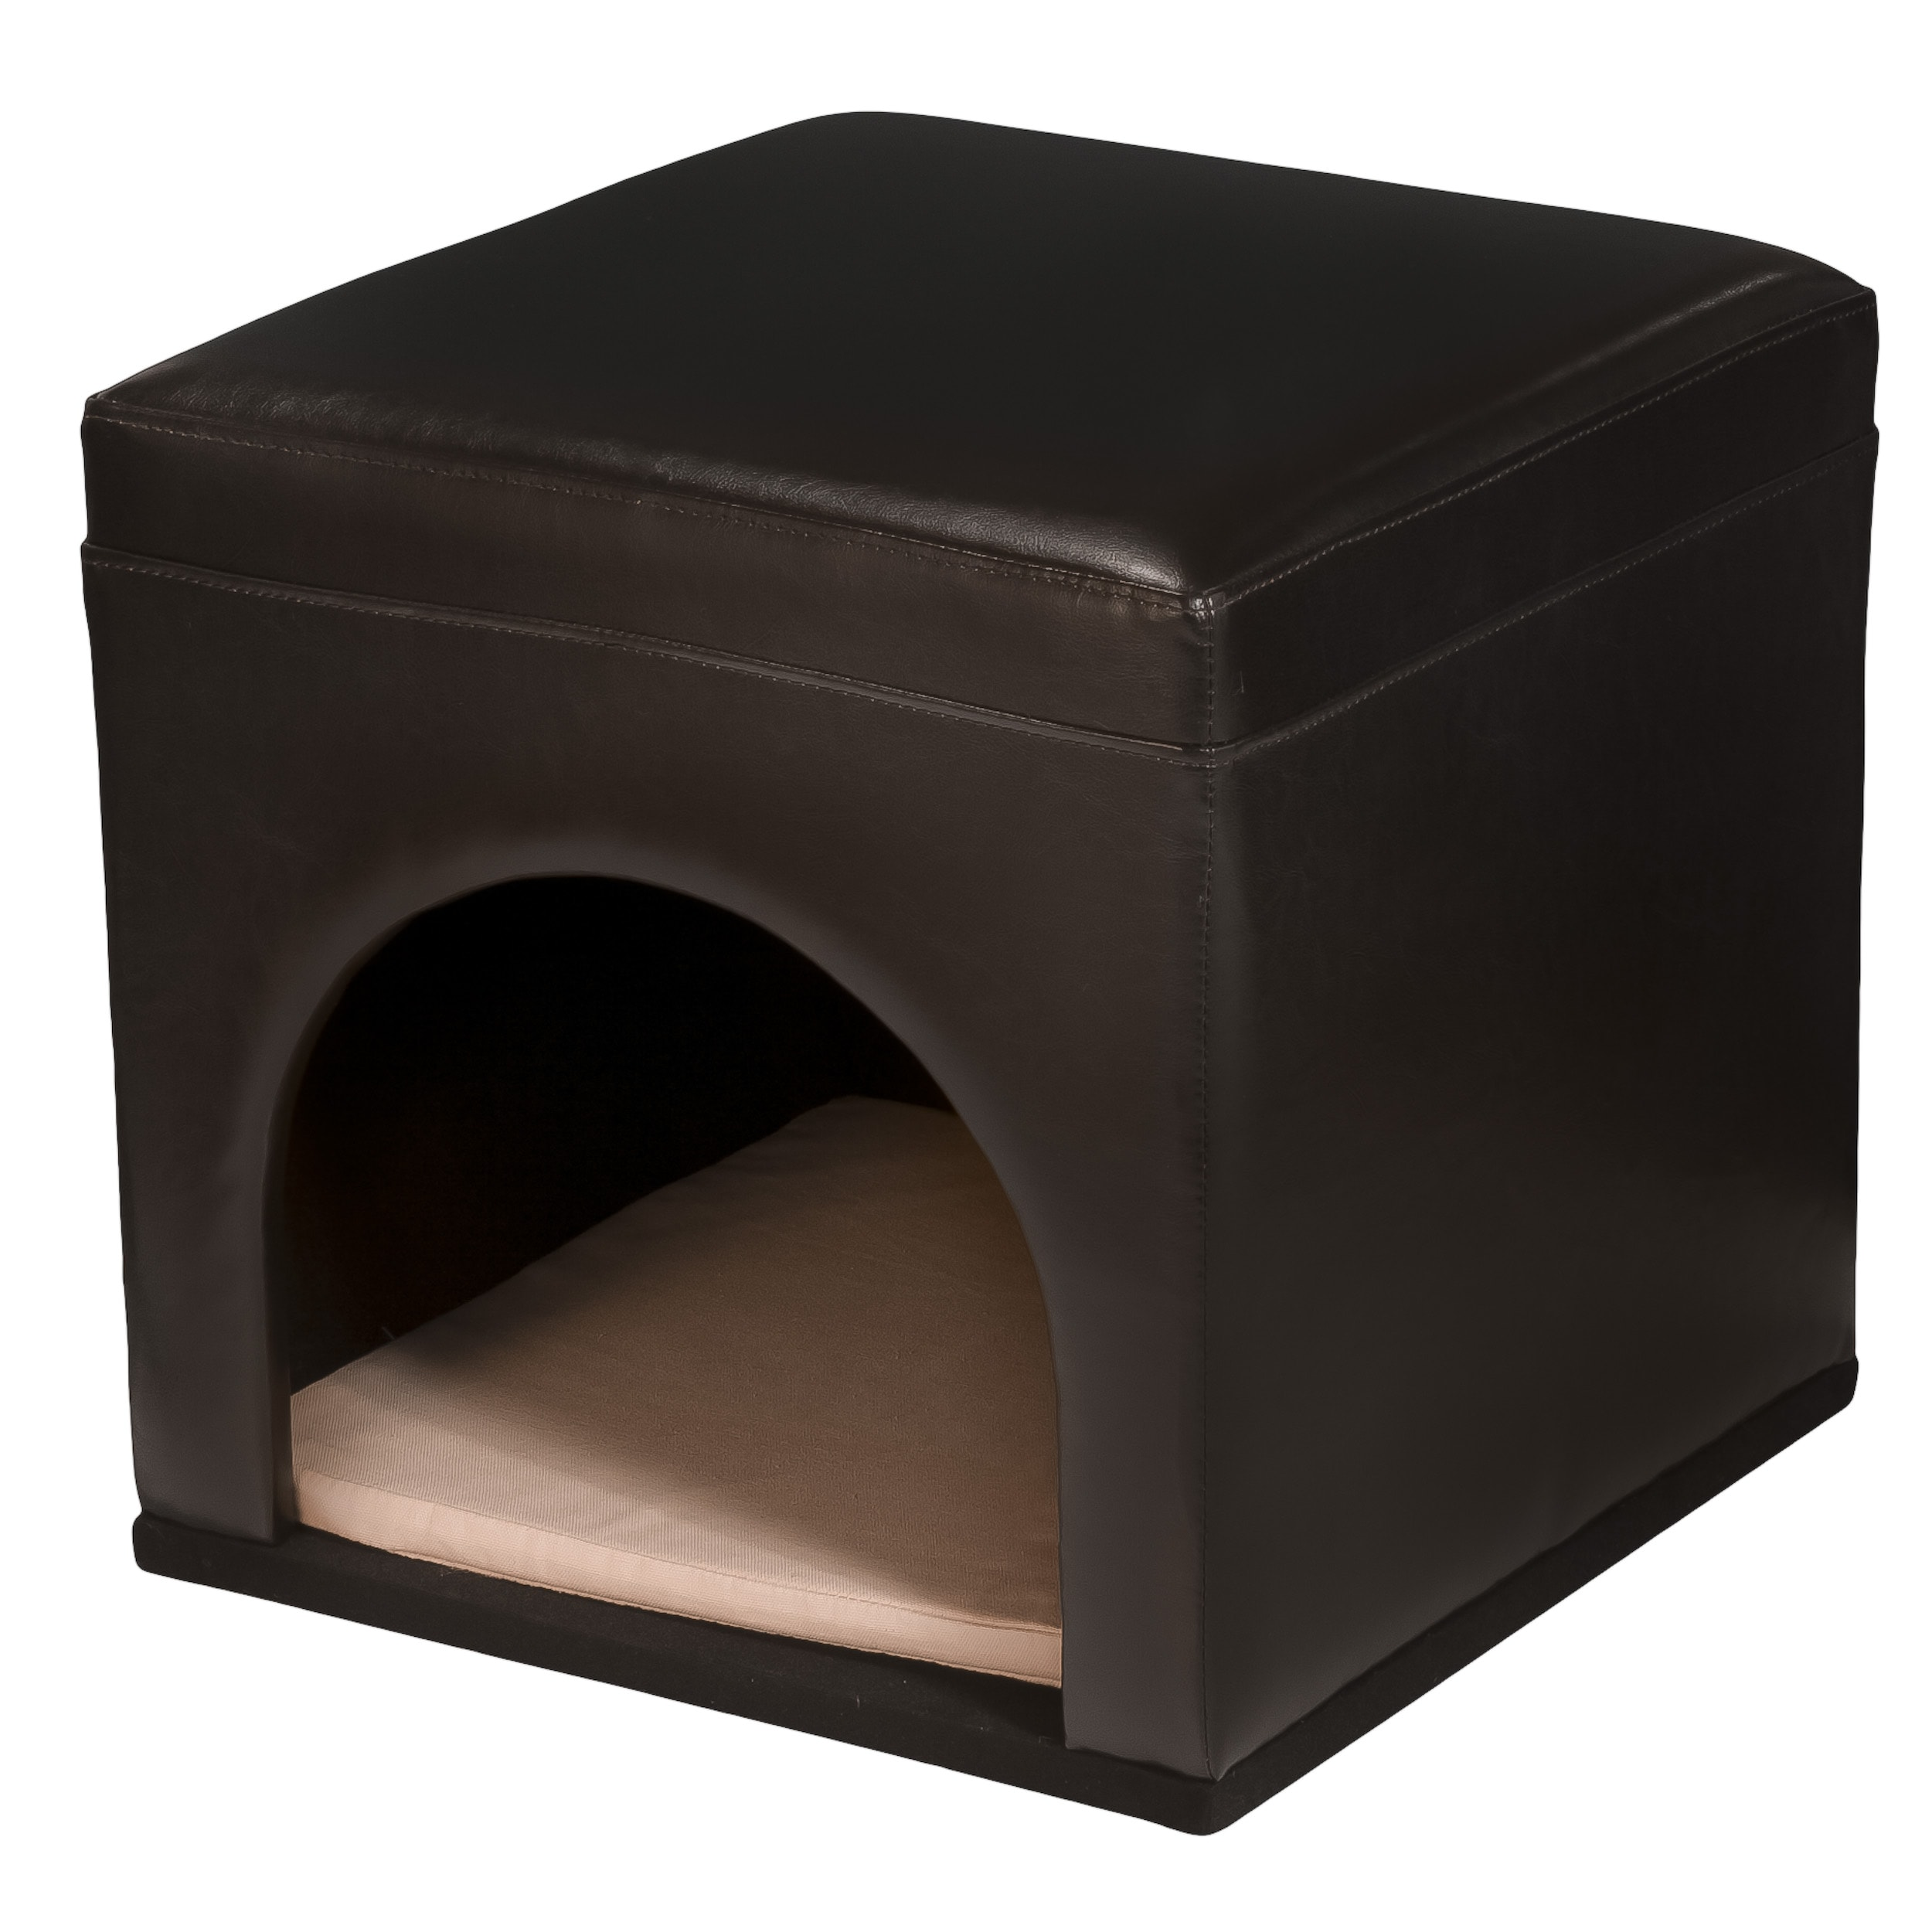 Assembled Espresso Bonded Leather Pet Bed (17.5 x 18.3 x 18.3) by Christopher Knight Home - Thumbnail 0